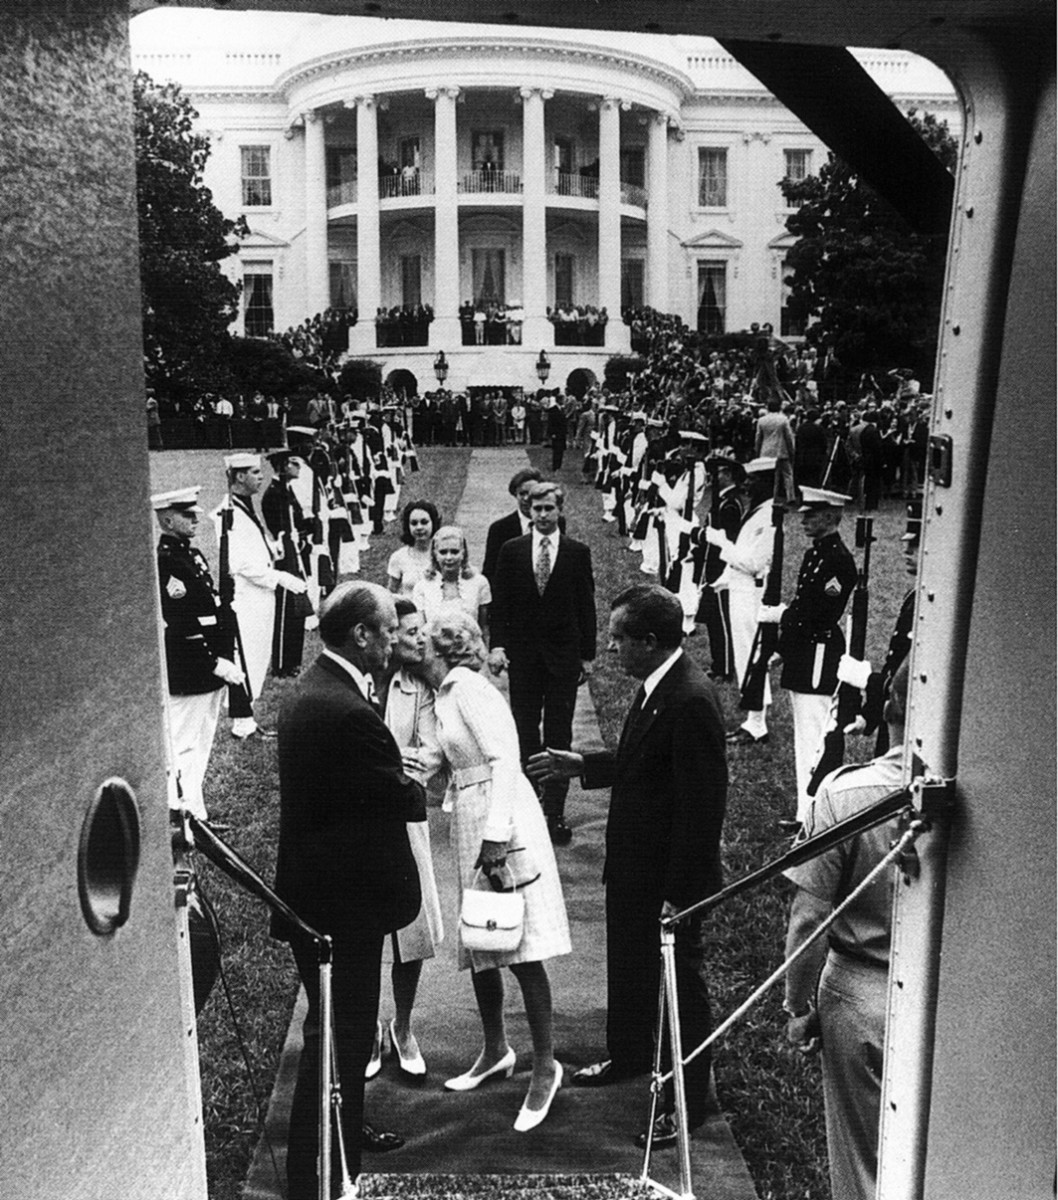 Richard Nixon departing the White House after resigning.